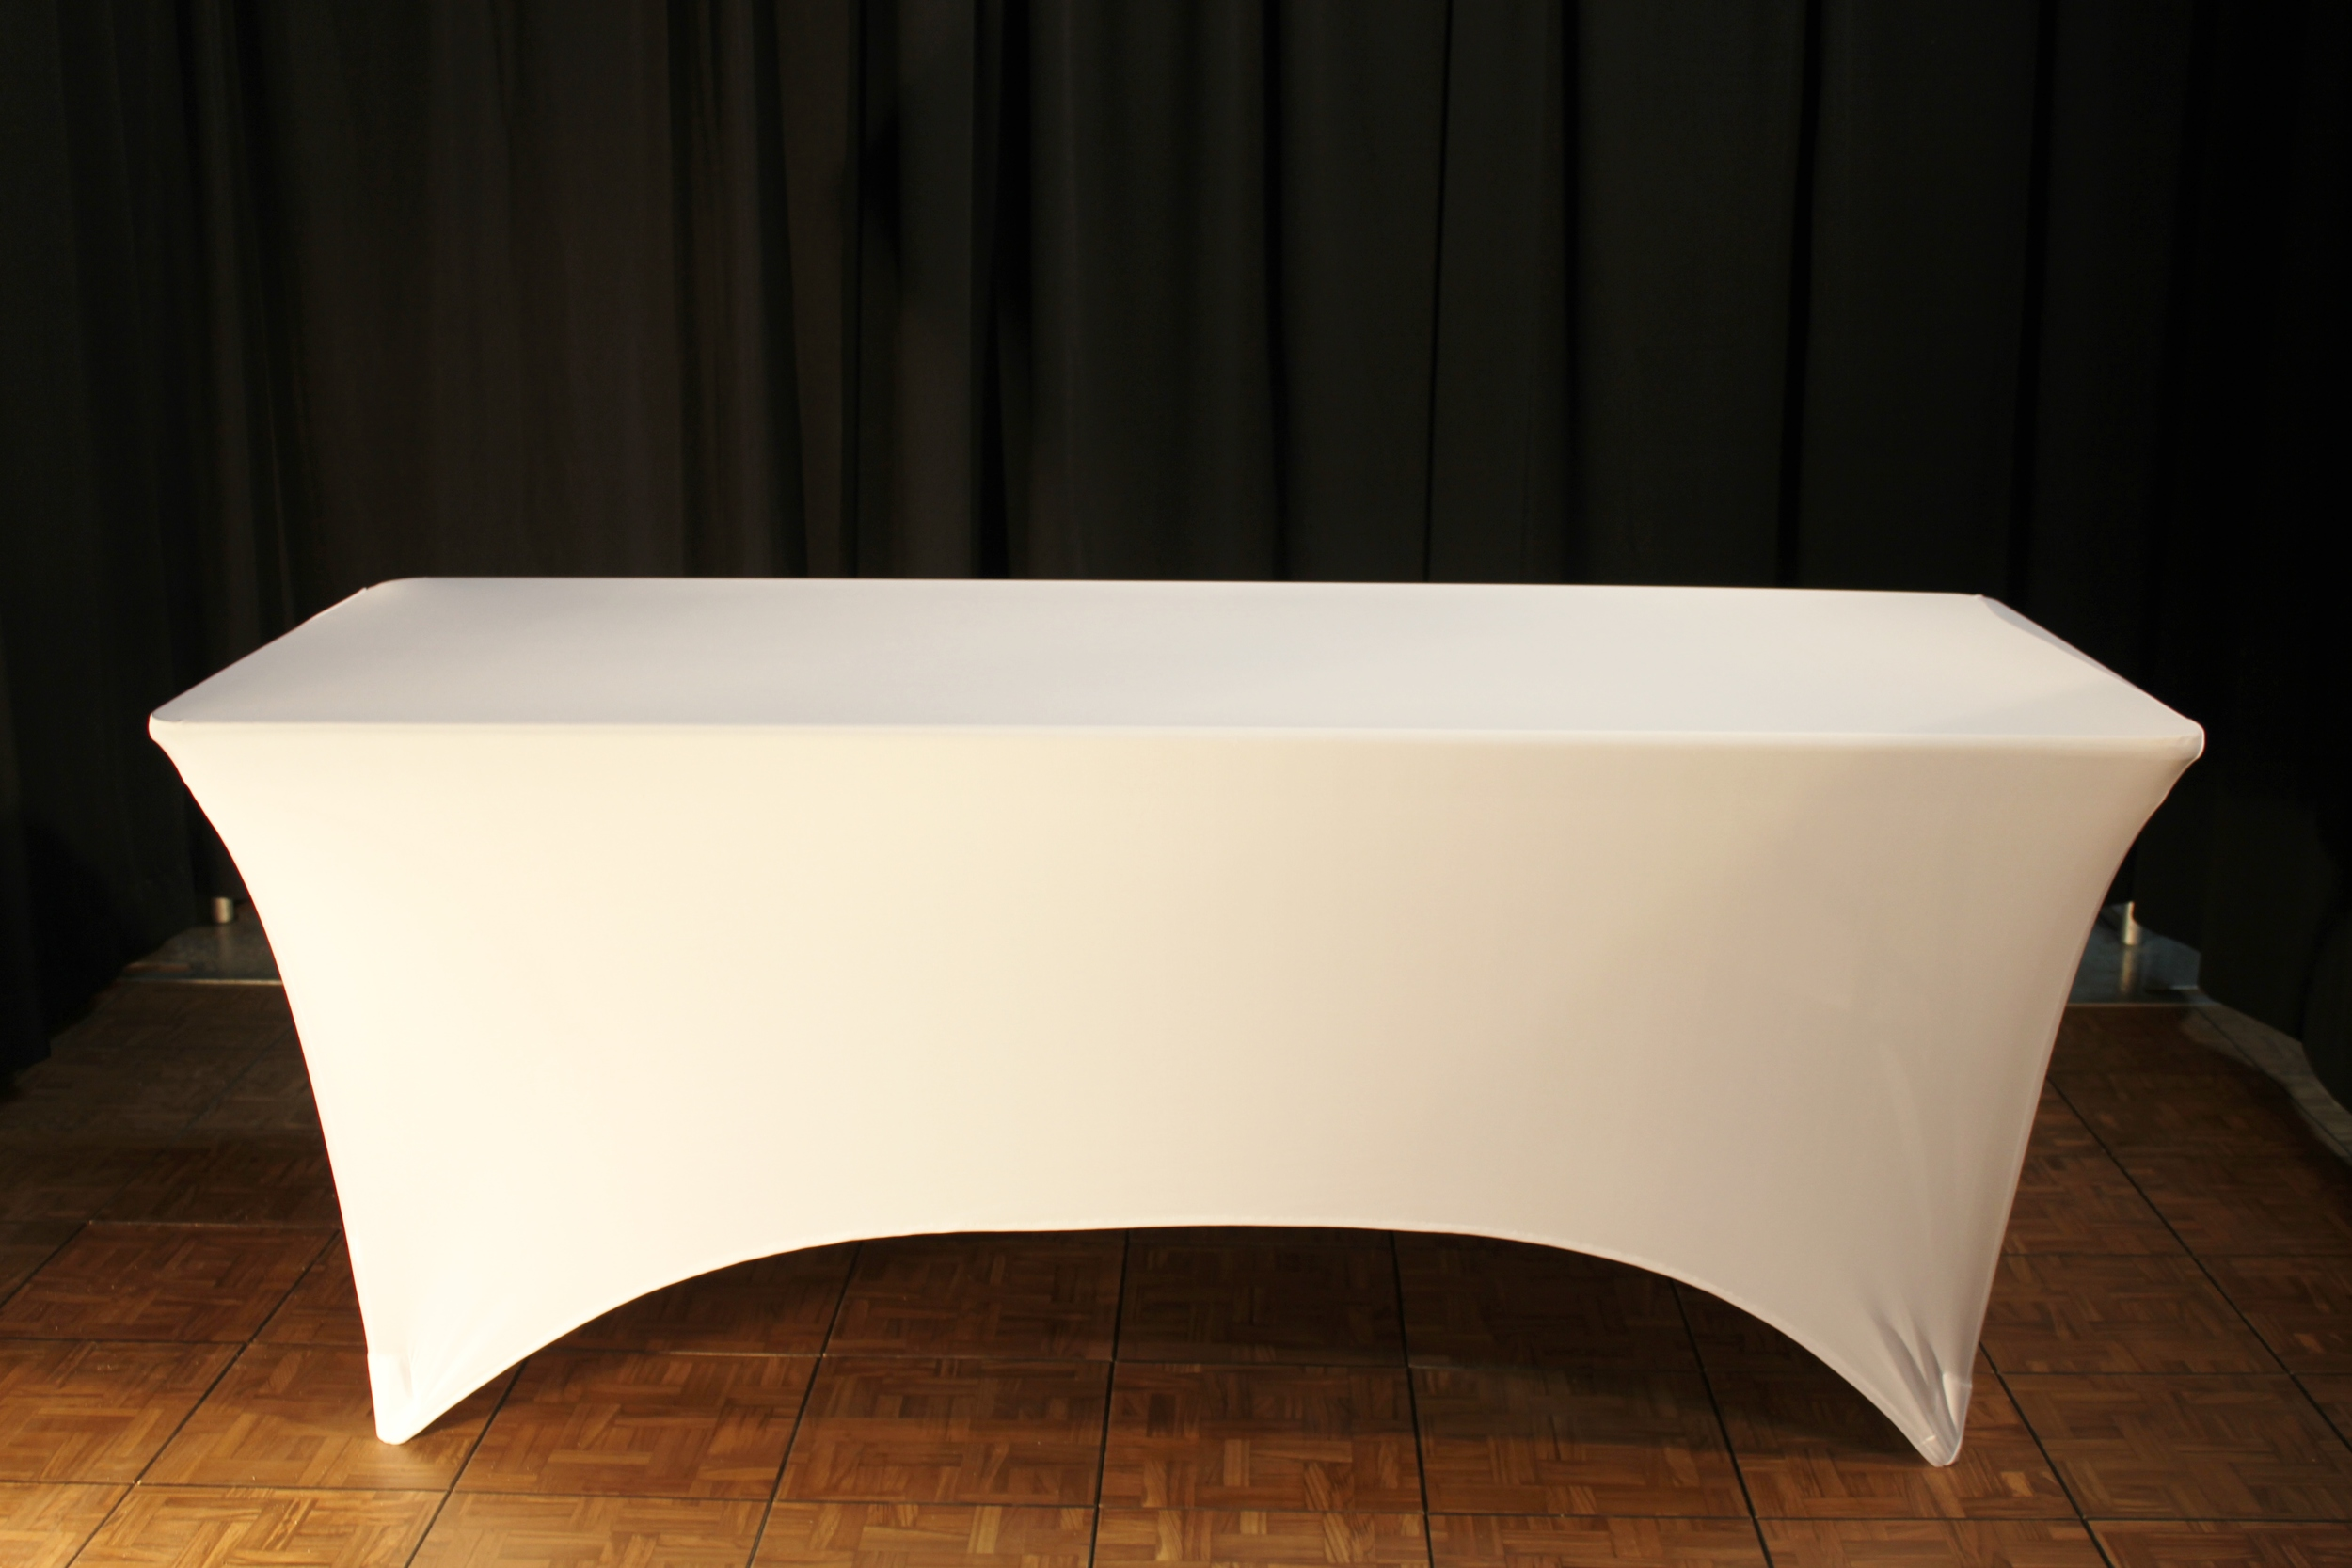 6ft rect table with stetch white linen.JPG